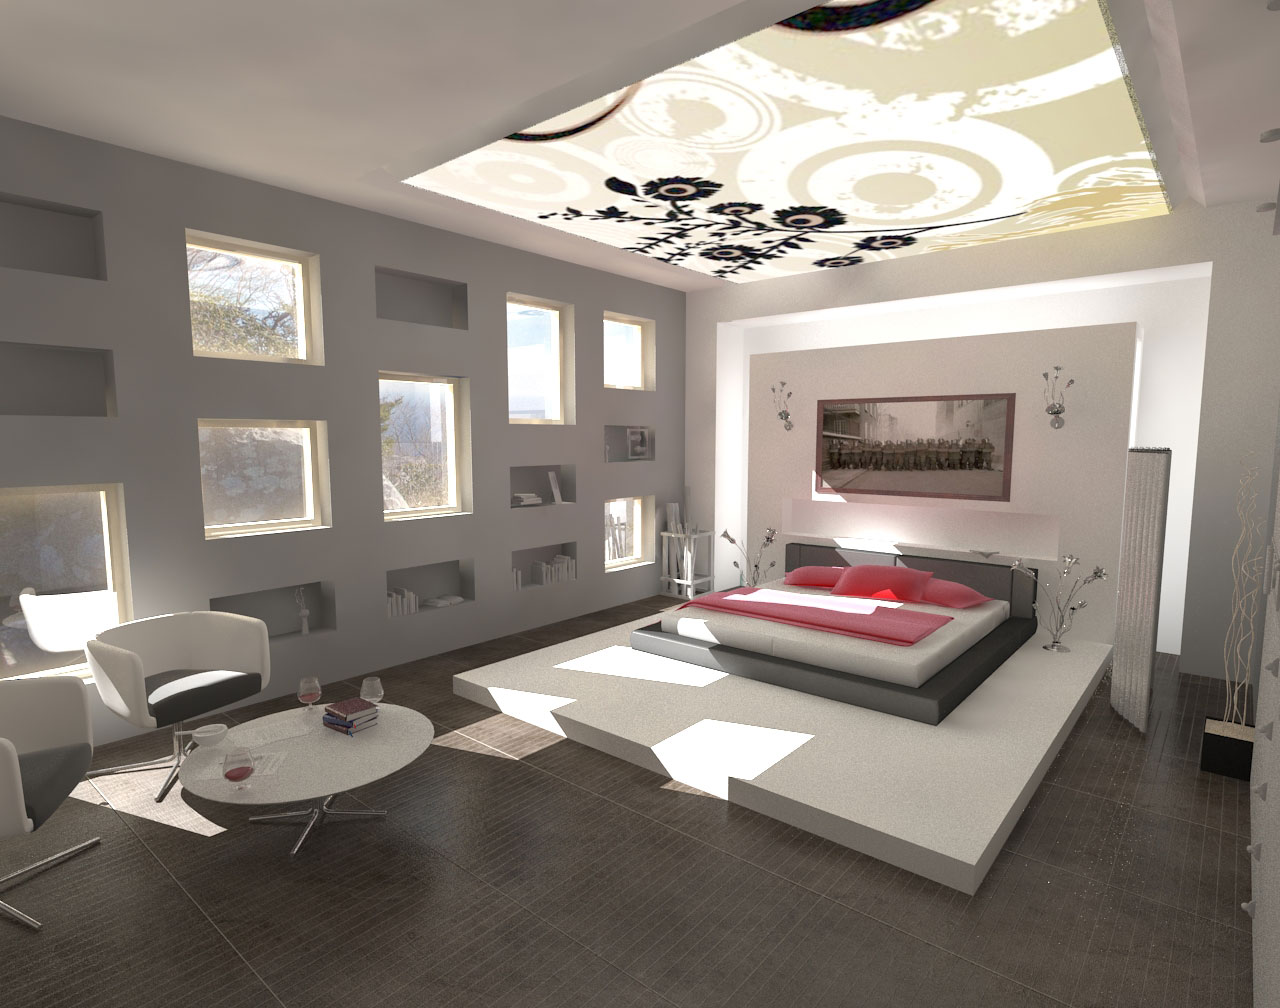 Top Modern Bedroom Interior Design Ideas 1280 x 1008 · 183 kB · jpeg